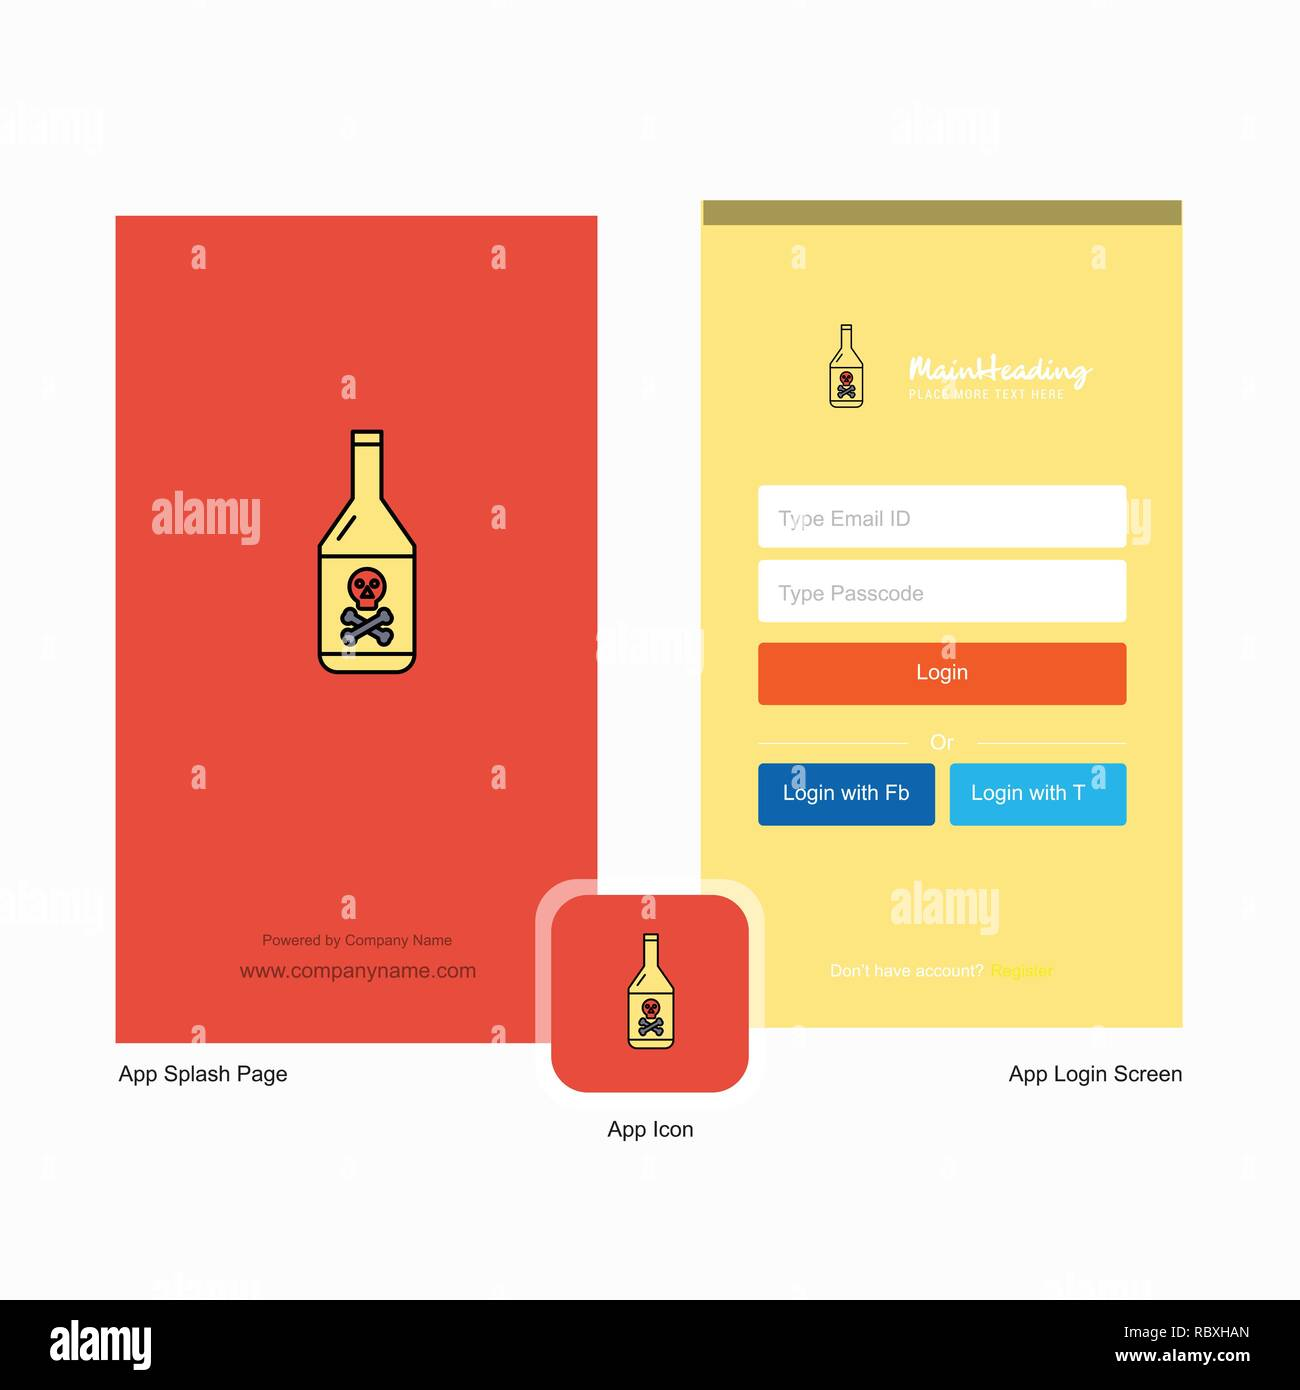 Company Drink bottle Splash Screen and Login Page design with Logo